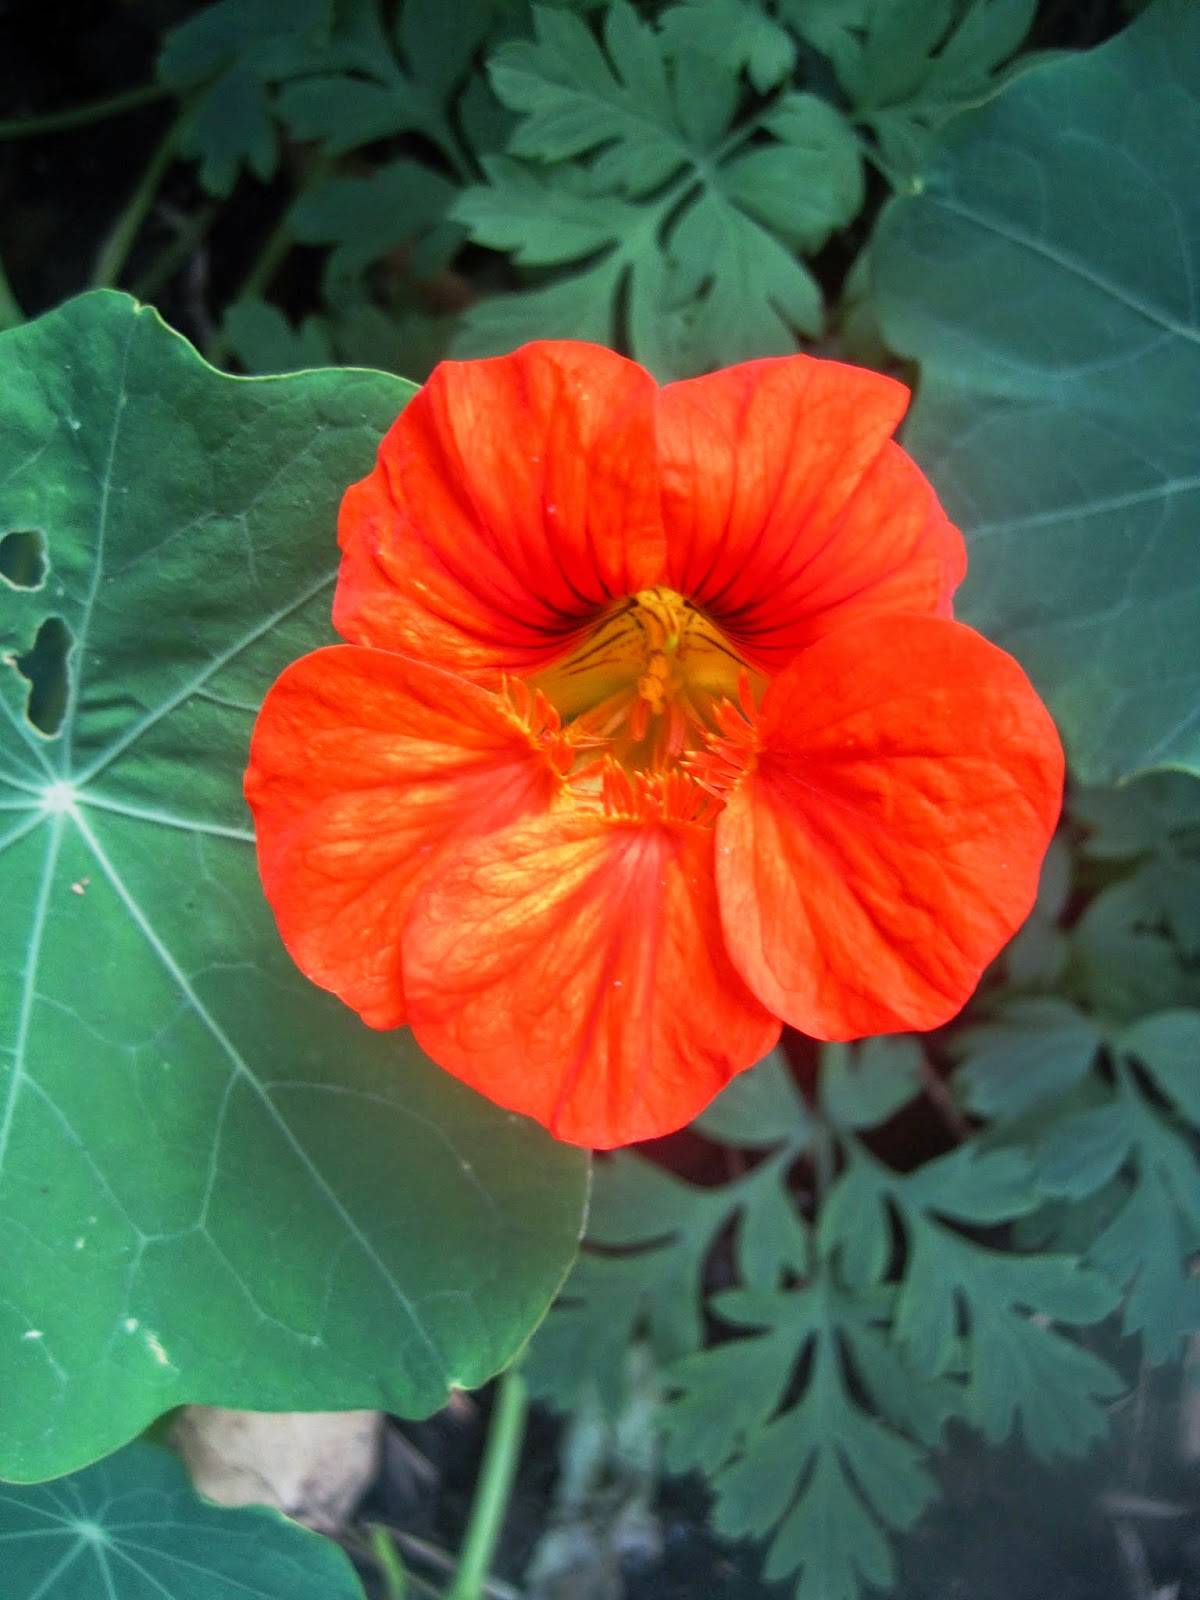 Tomato marmande agm seeds d t brown vegetable seeds - Glorious Painterly Nasturtium Flowers All On The Same Plant